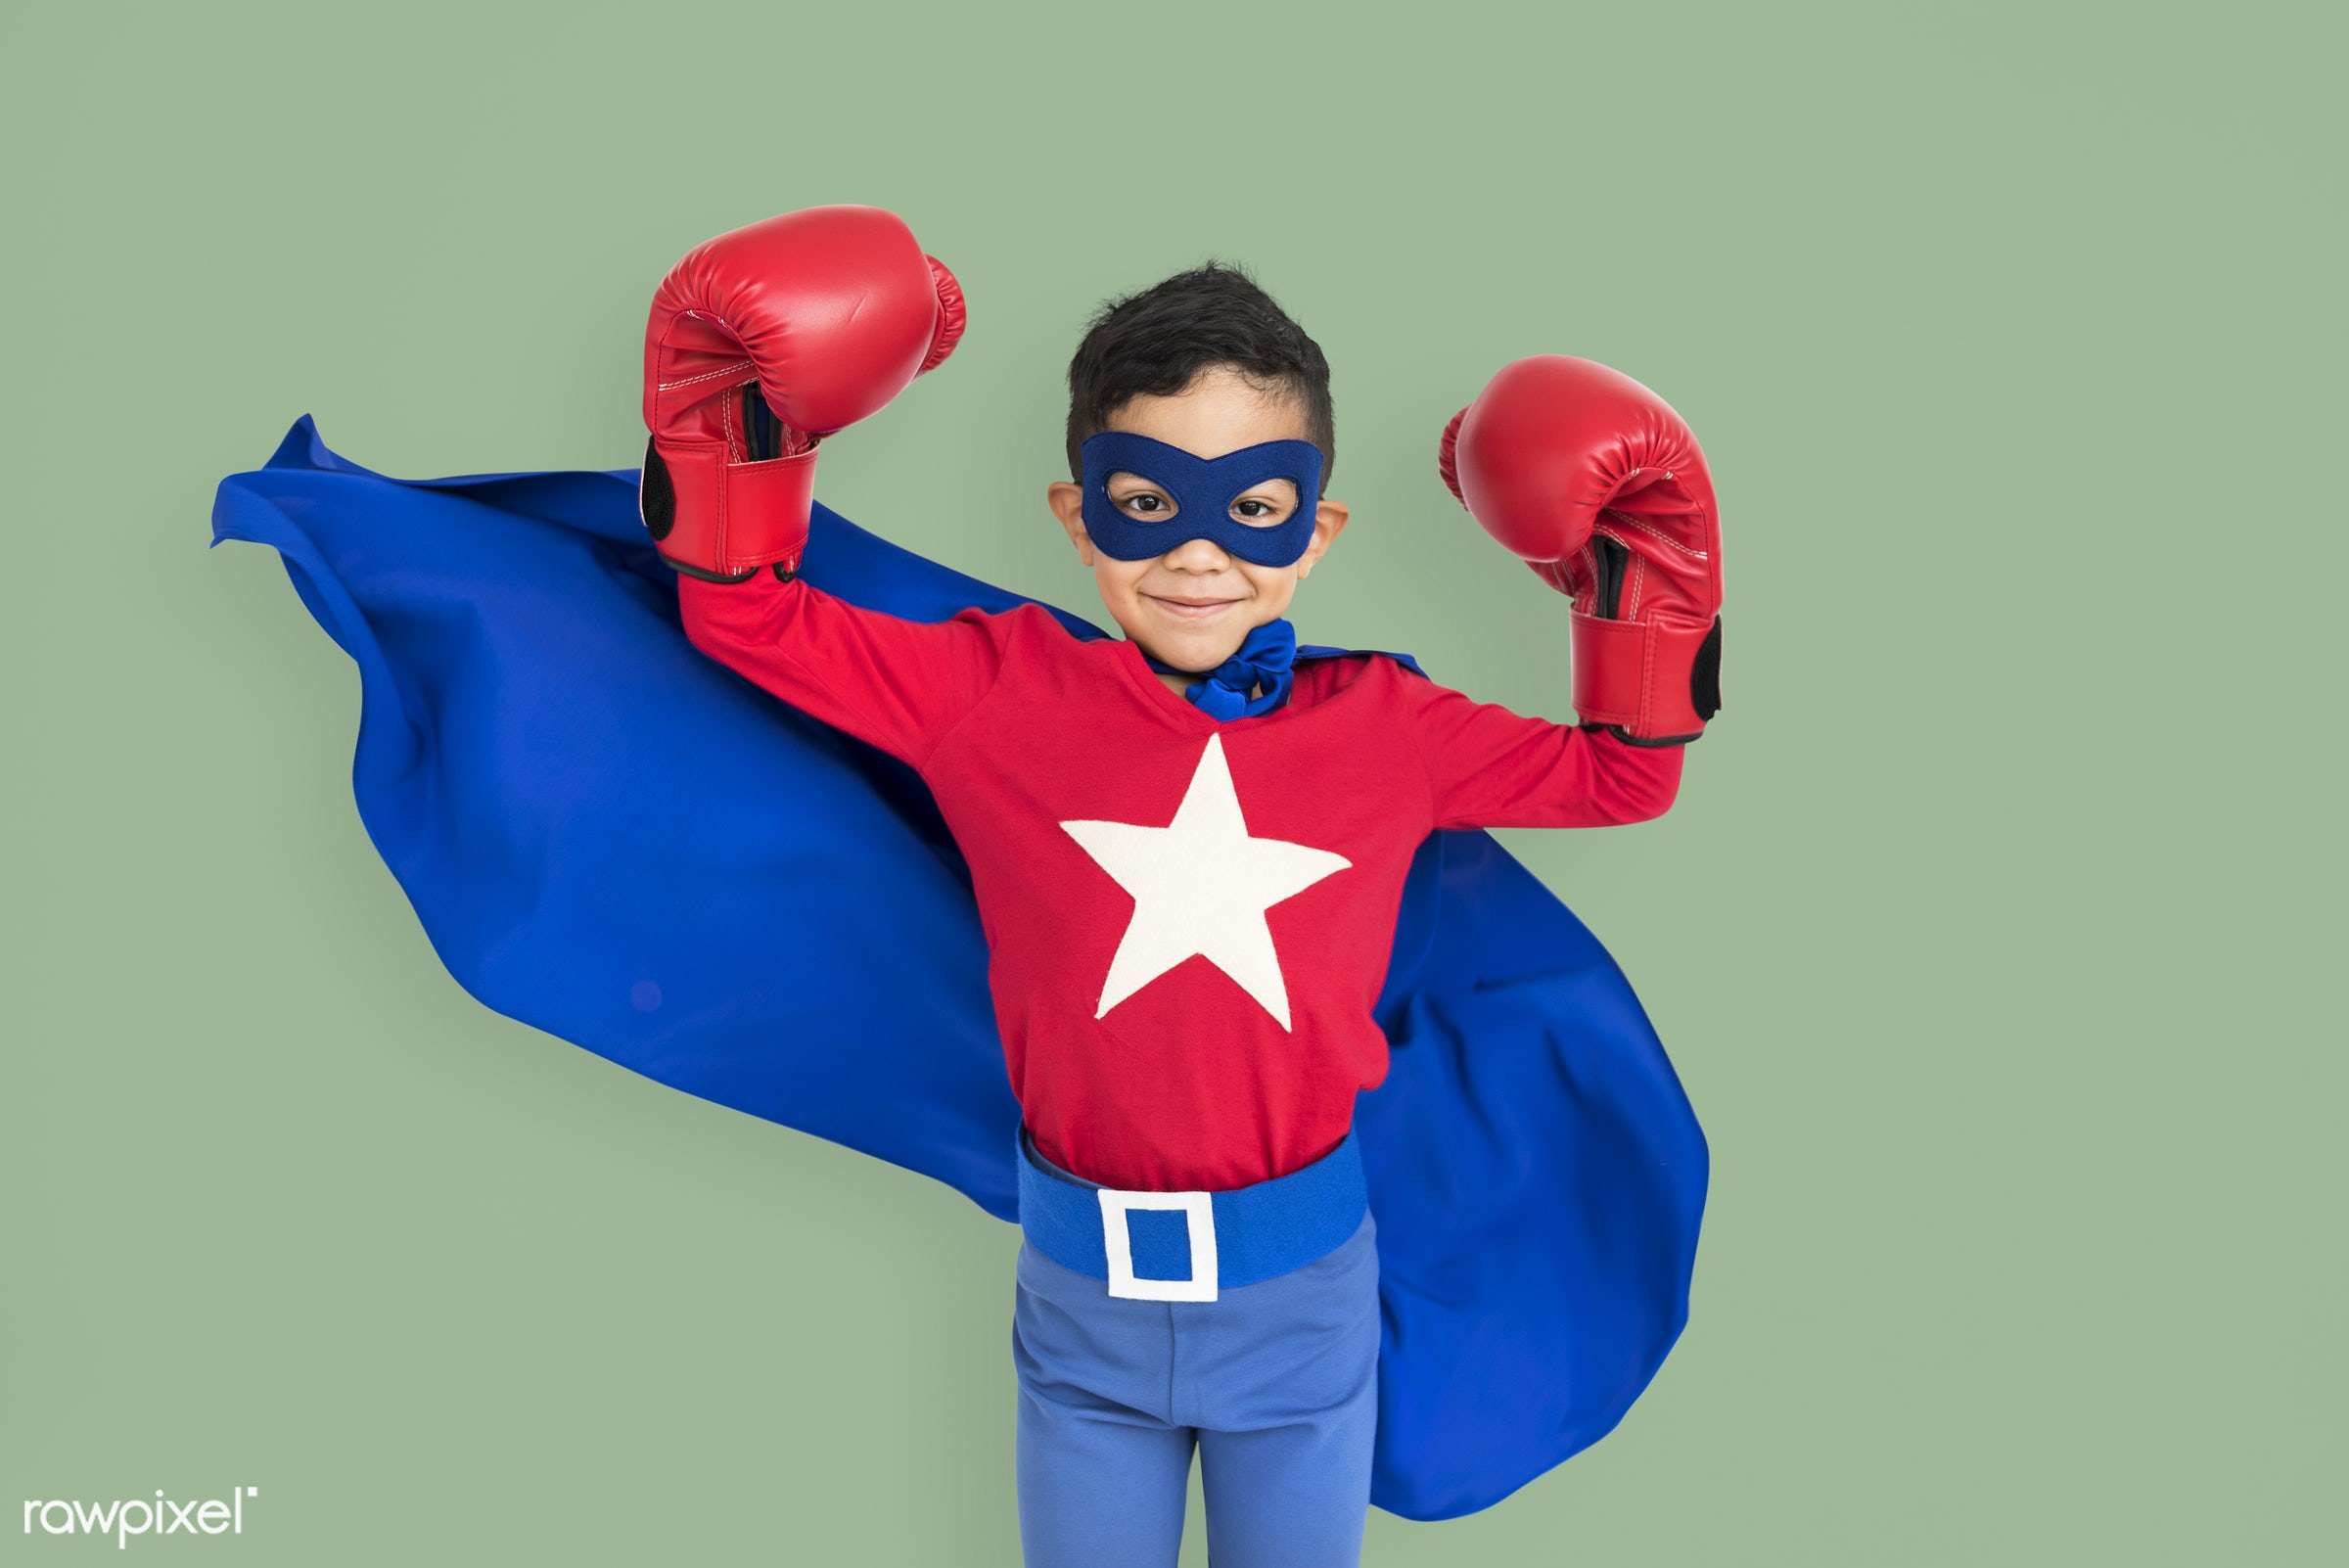 expression, studio, might, person, cape, joy, mask, little, cute, people, kid, smile, cheerful, smiling, superhero, isolated...